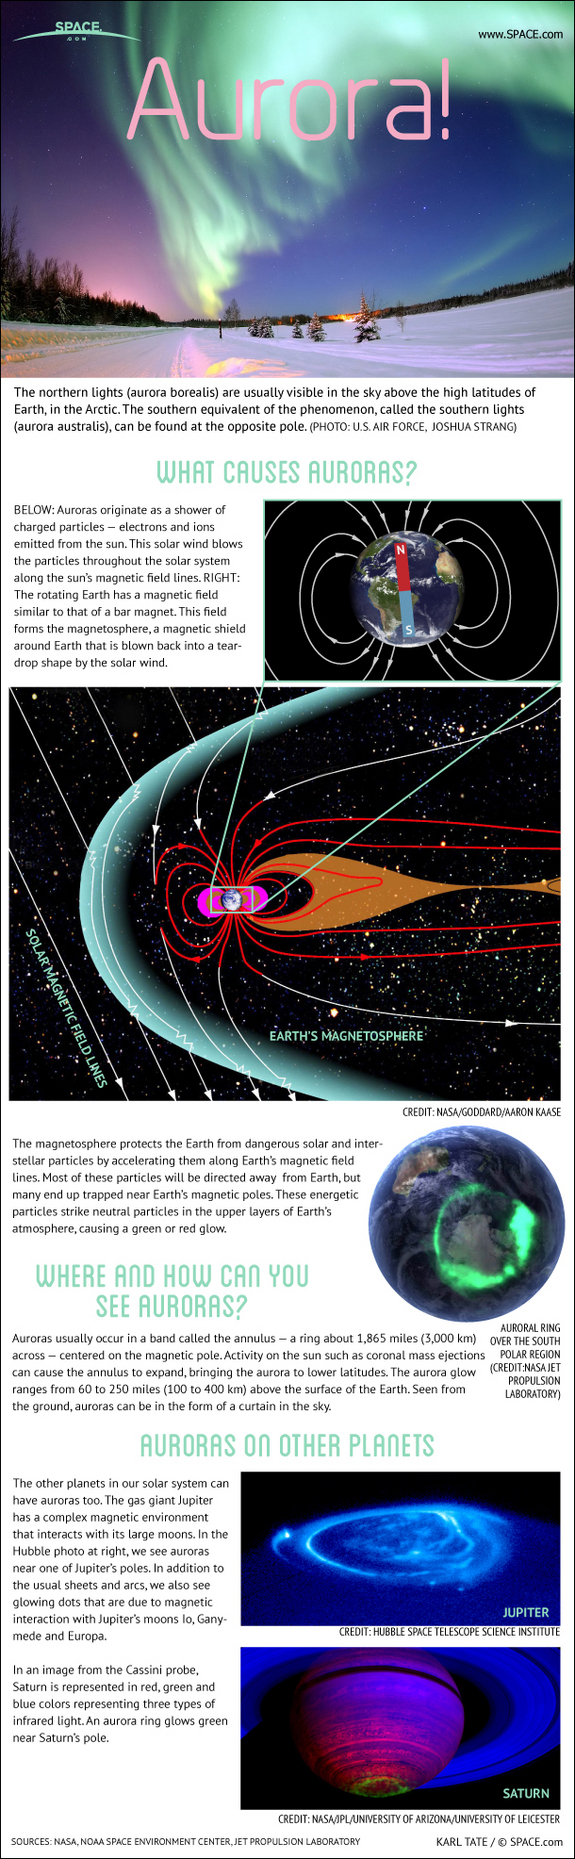 Find out where to see sky-filling aurora lights, in this SPACE.com infographic.